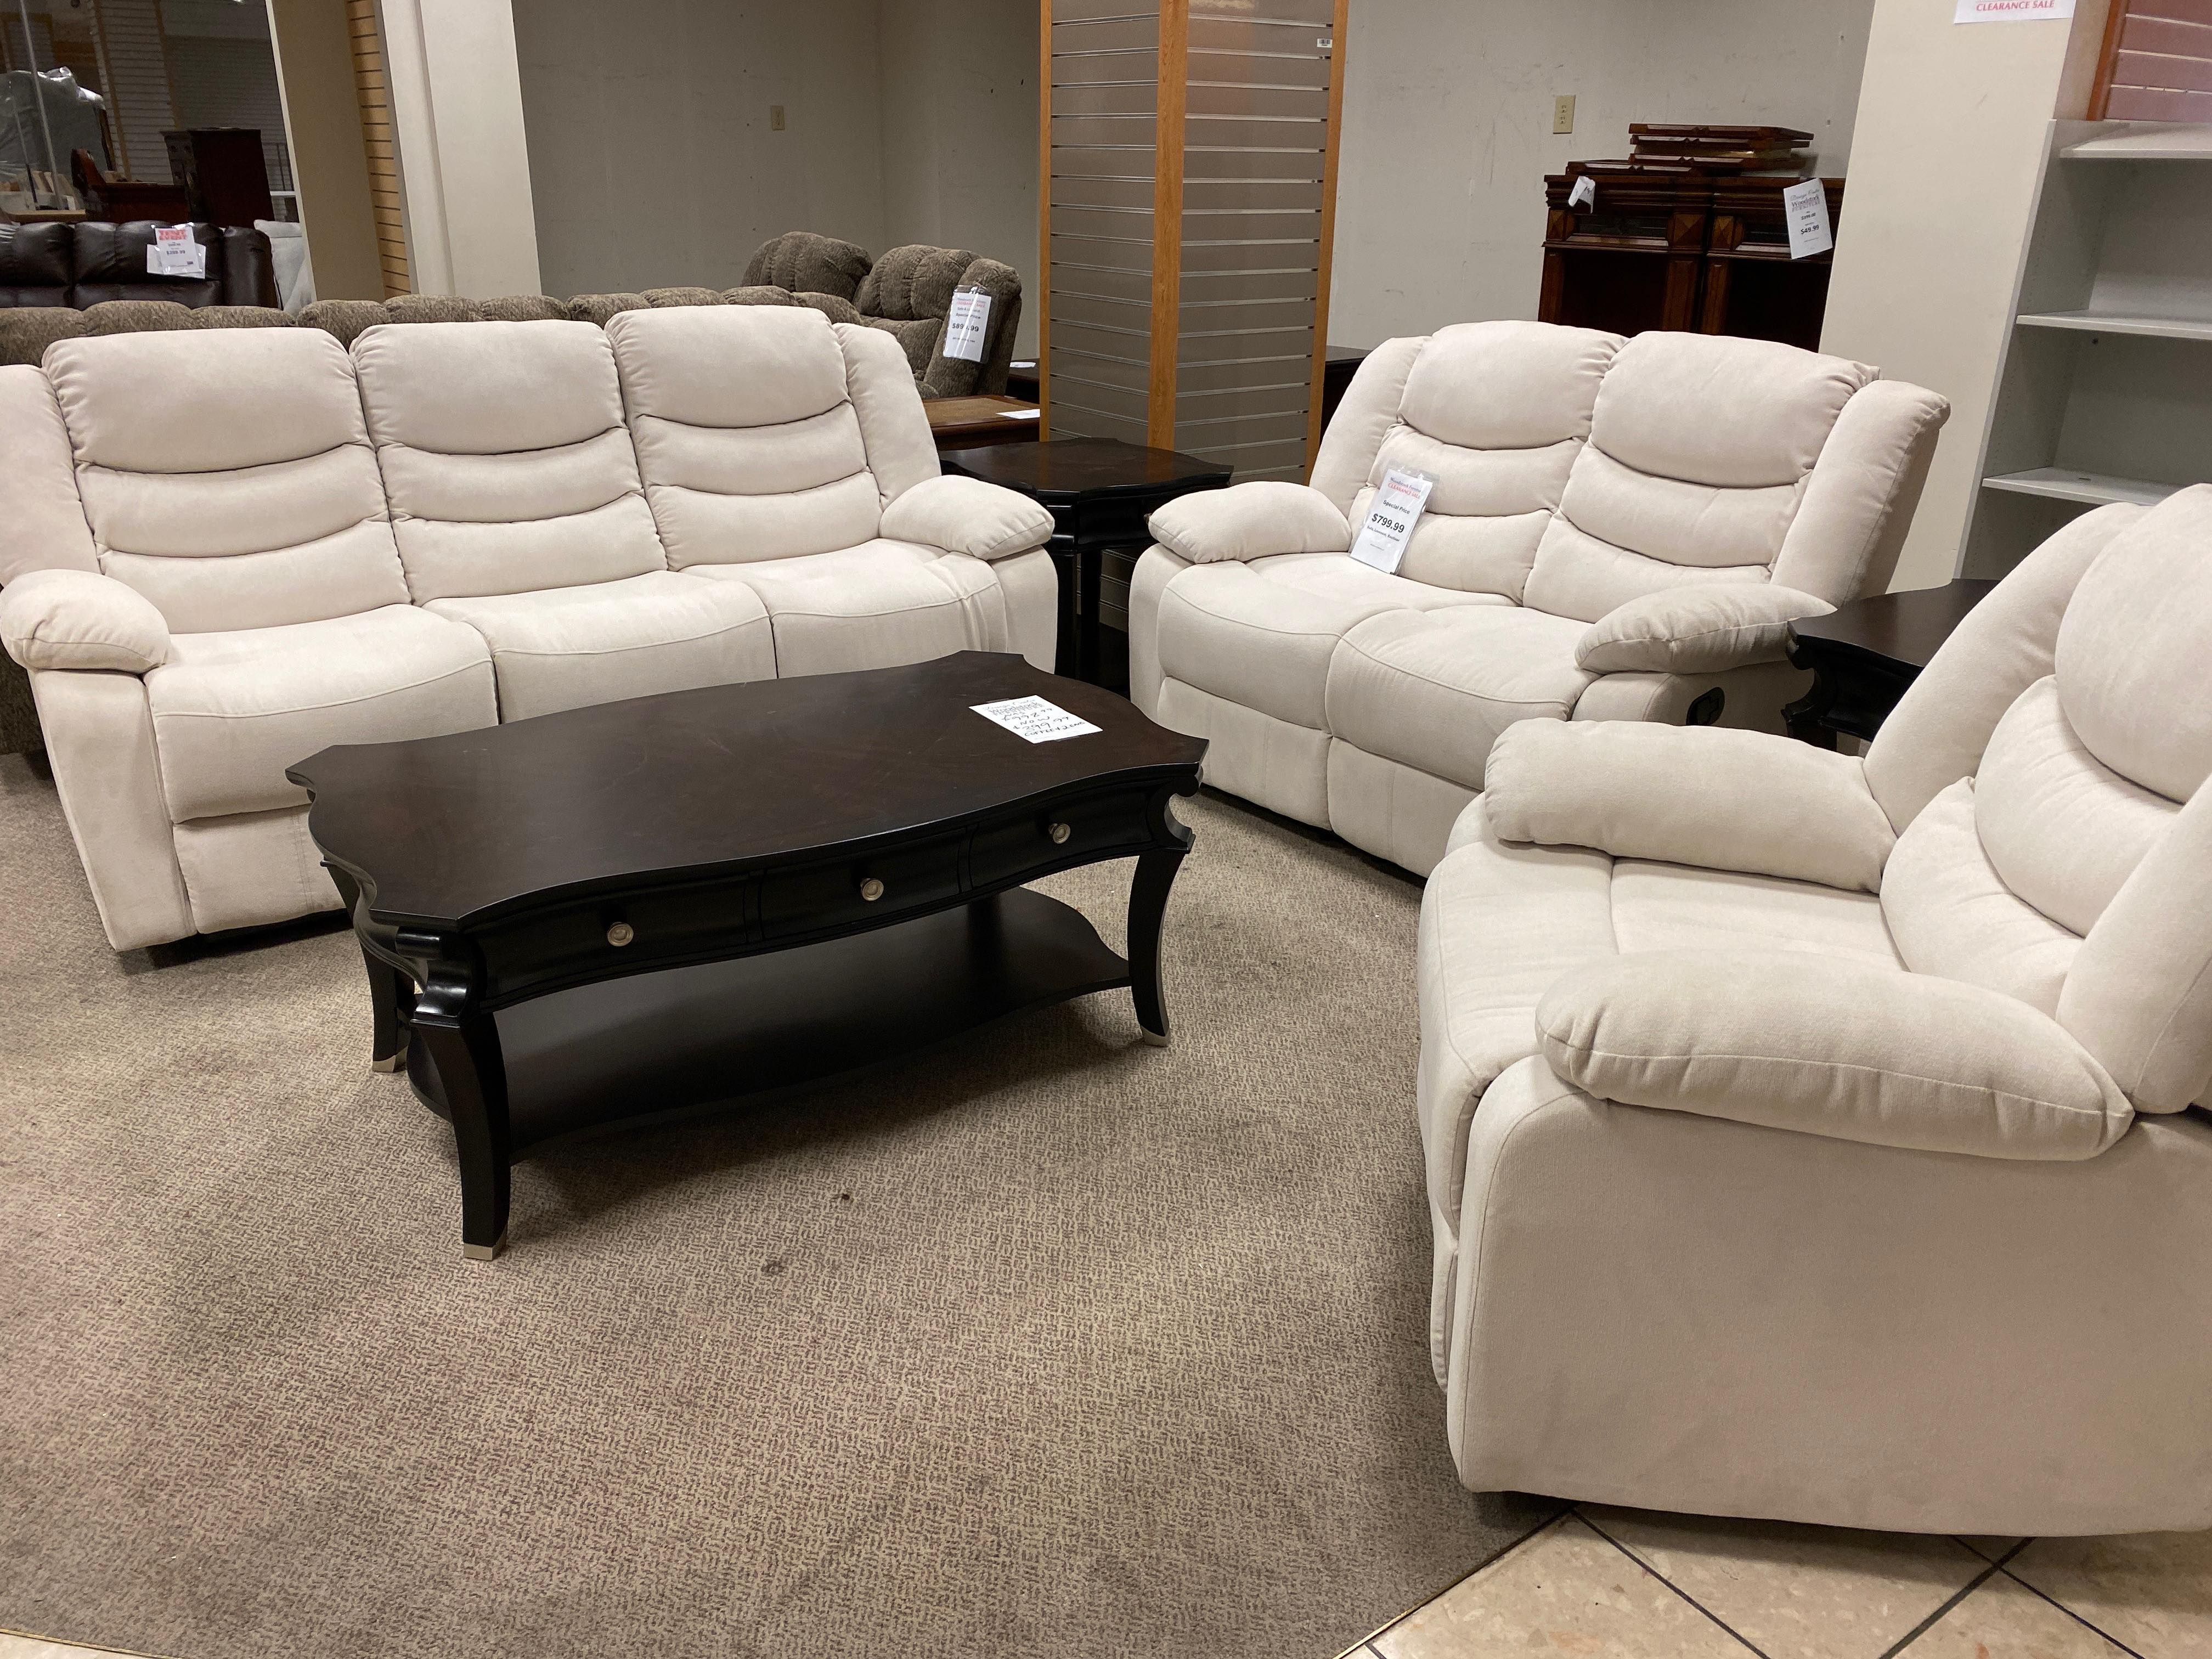 Shop Woodstock Furniture Inventory Clearance Sale This Friday Thru Sunday 1320 Bonita Discount Furniture Stores Furniture Affordable Living Room Furniture